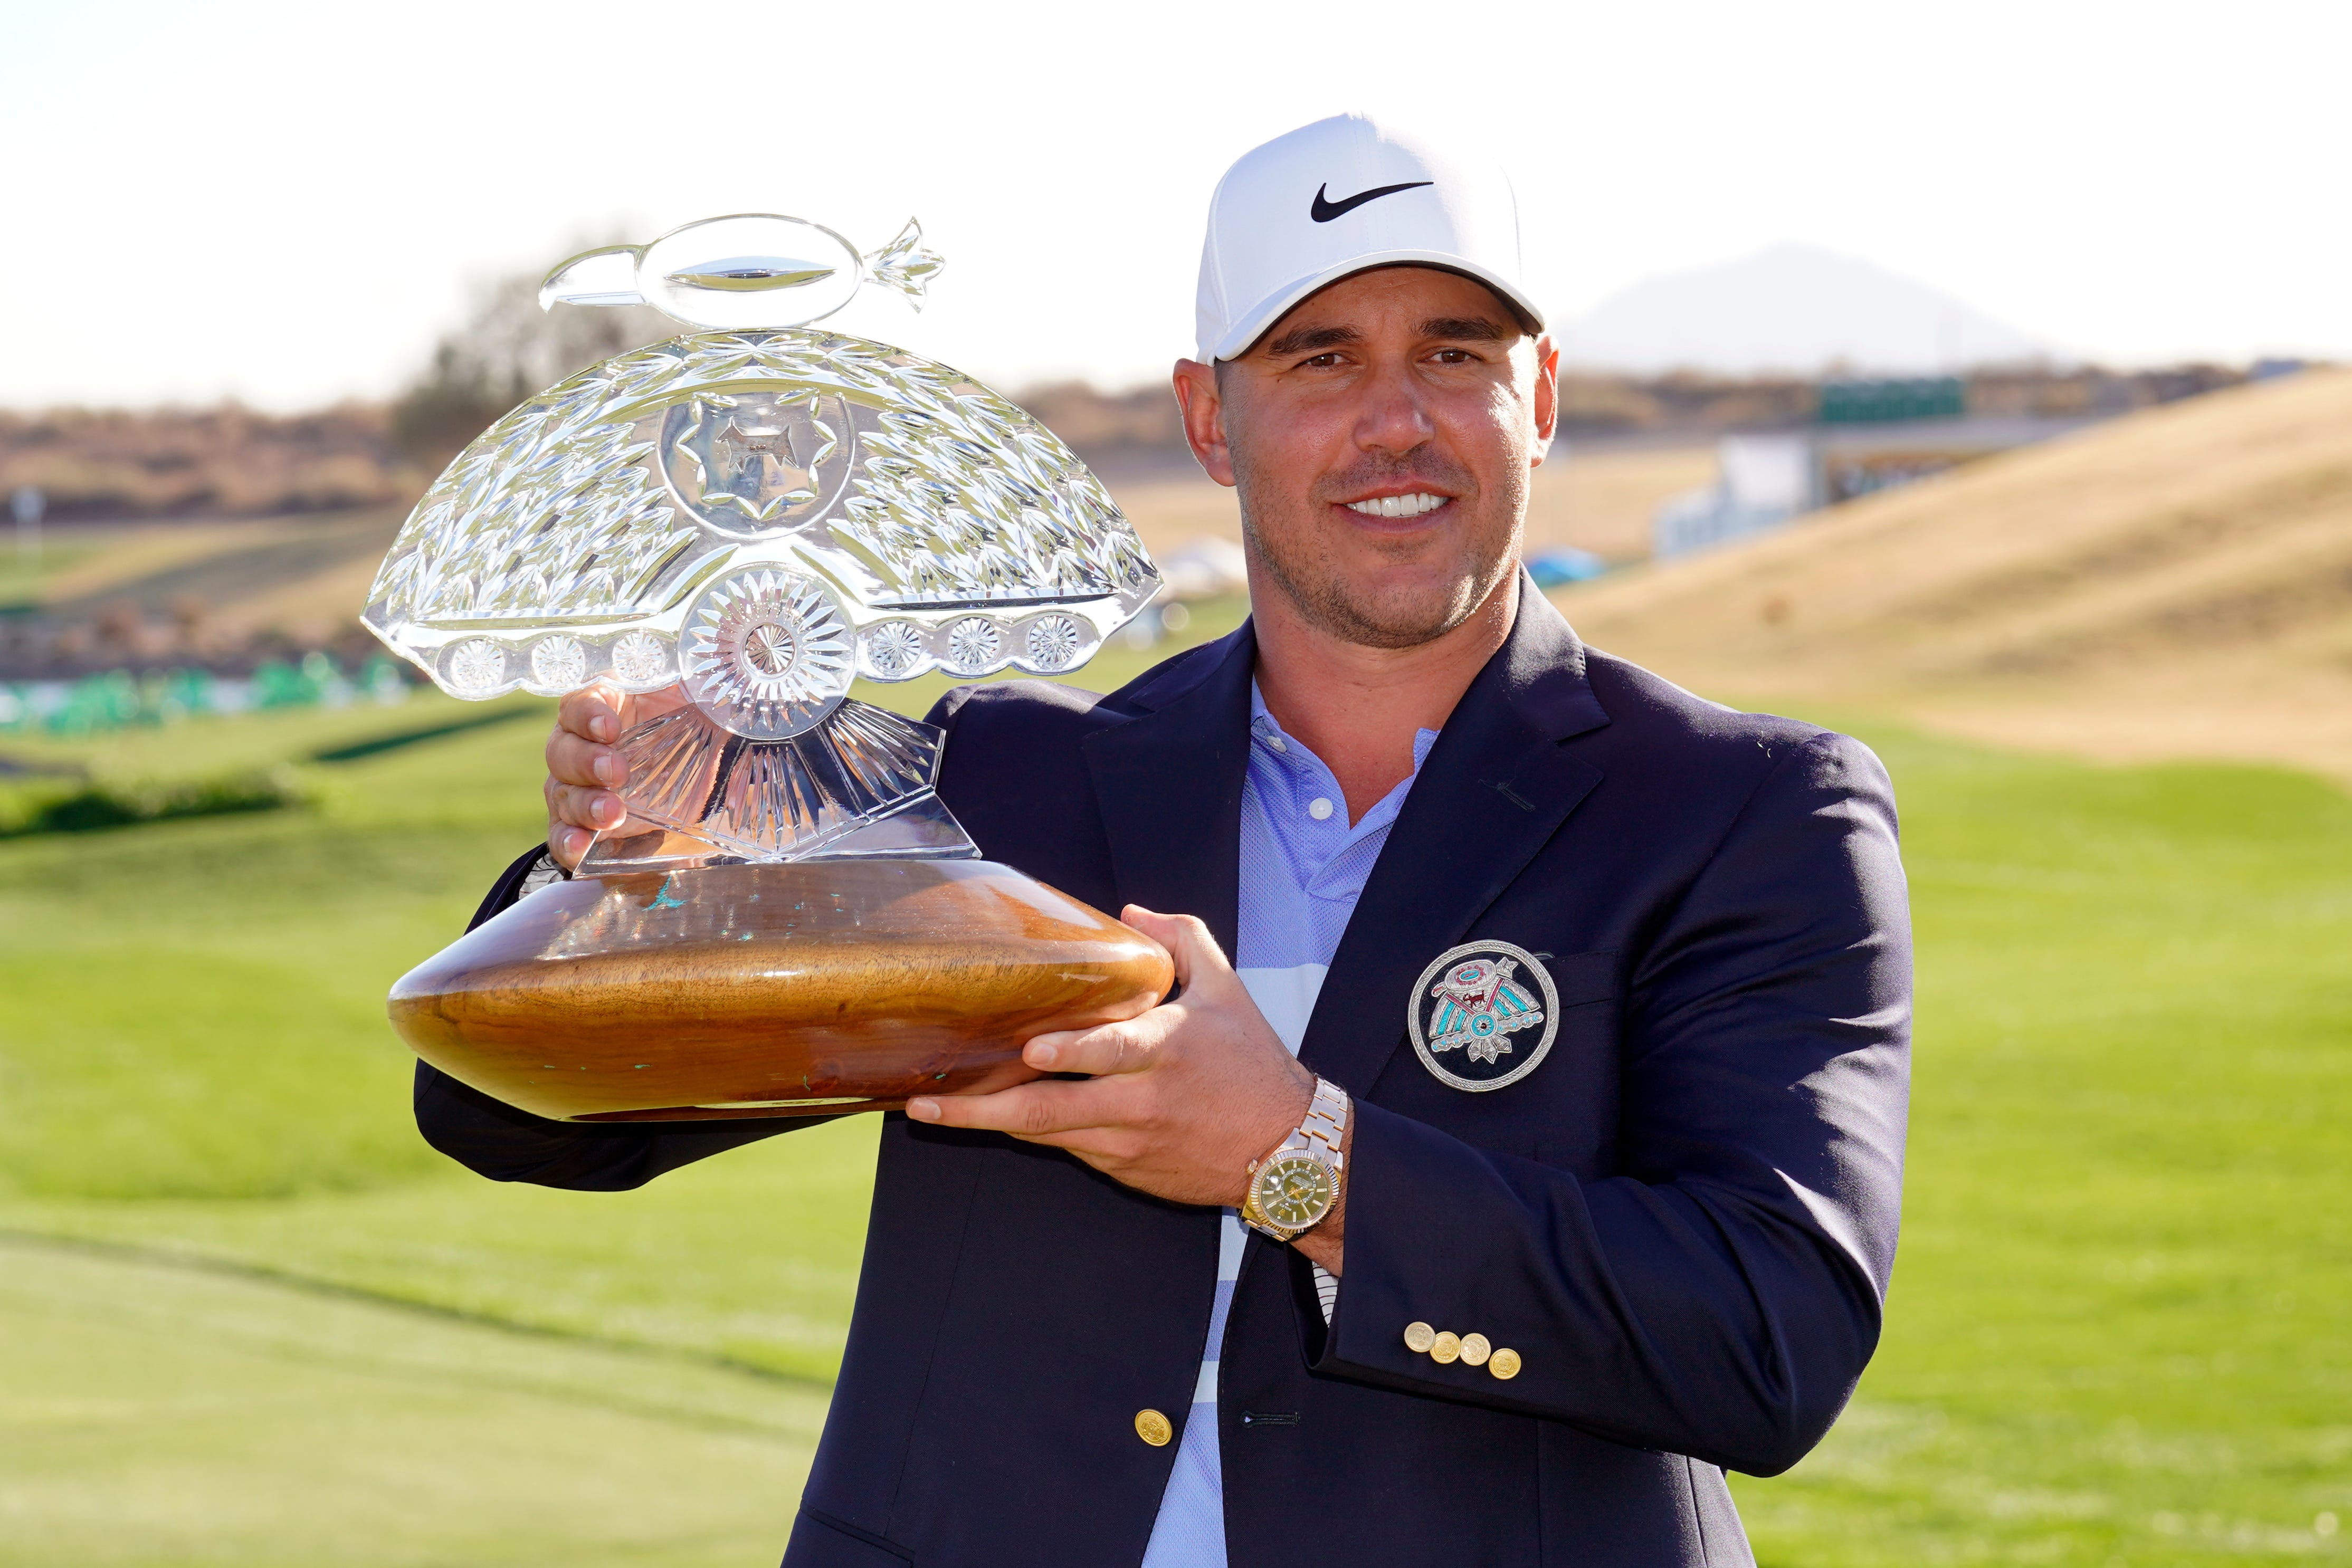 Brooks Koepka 5 Facts About The Pga Tour Golfer